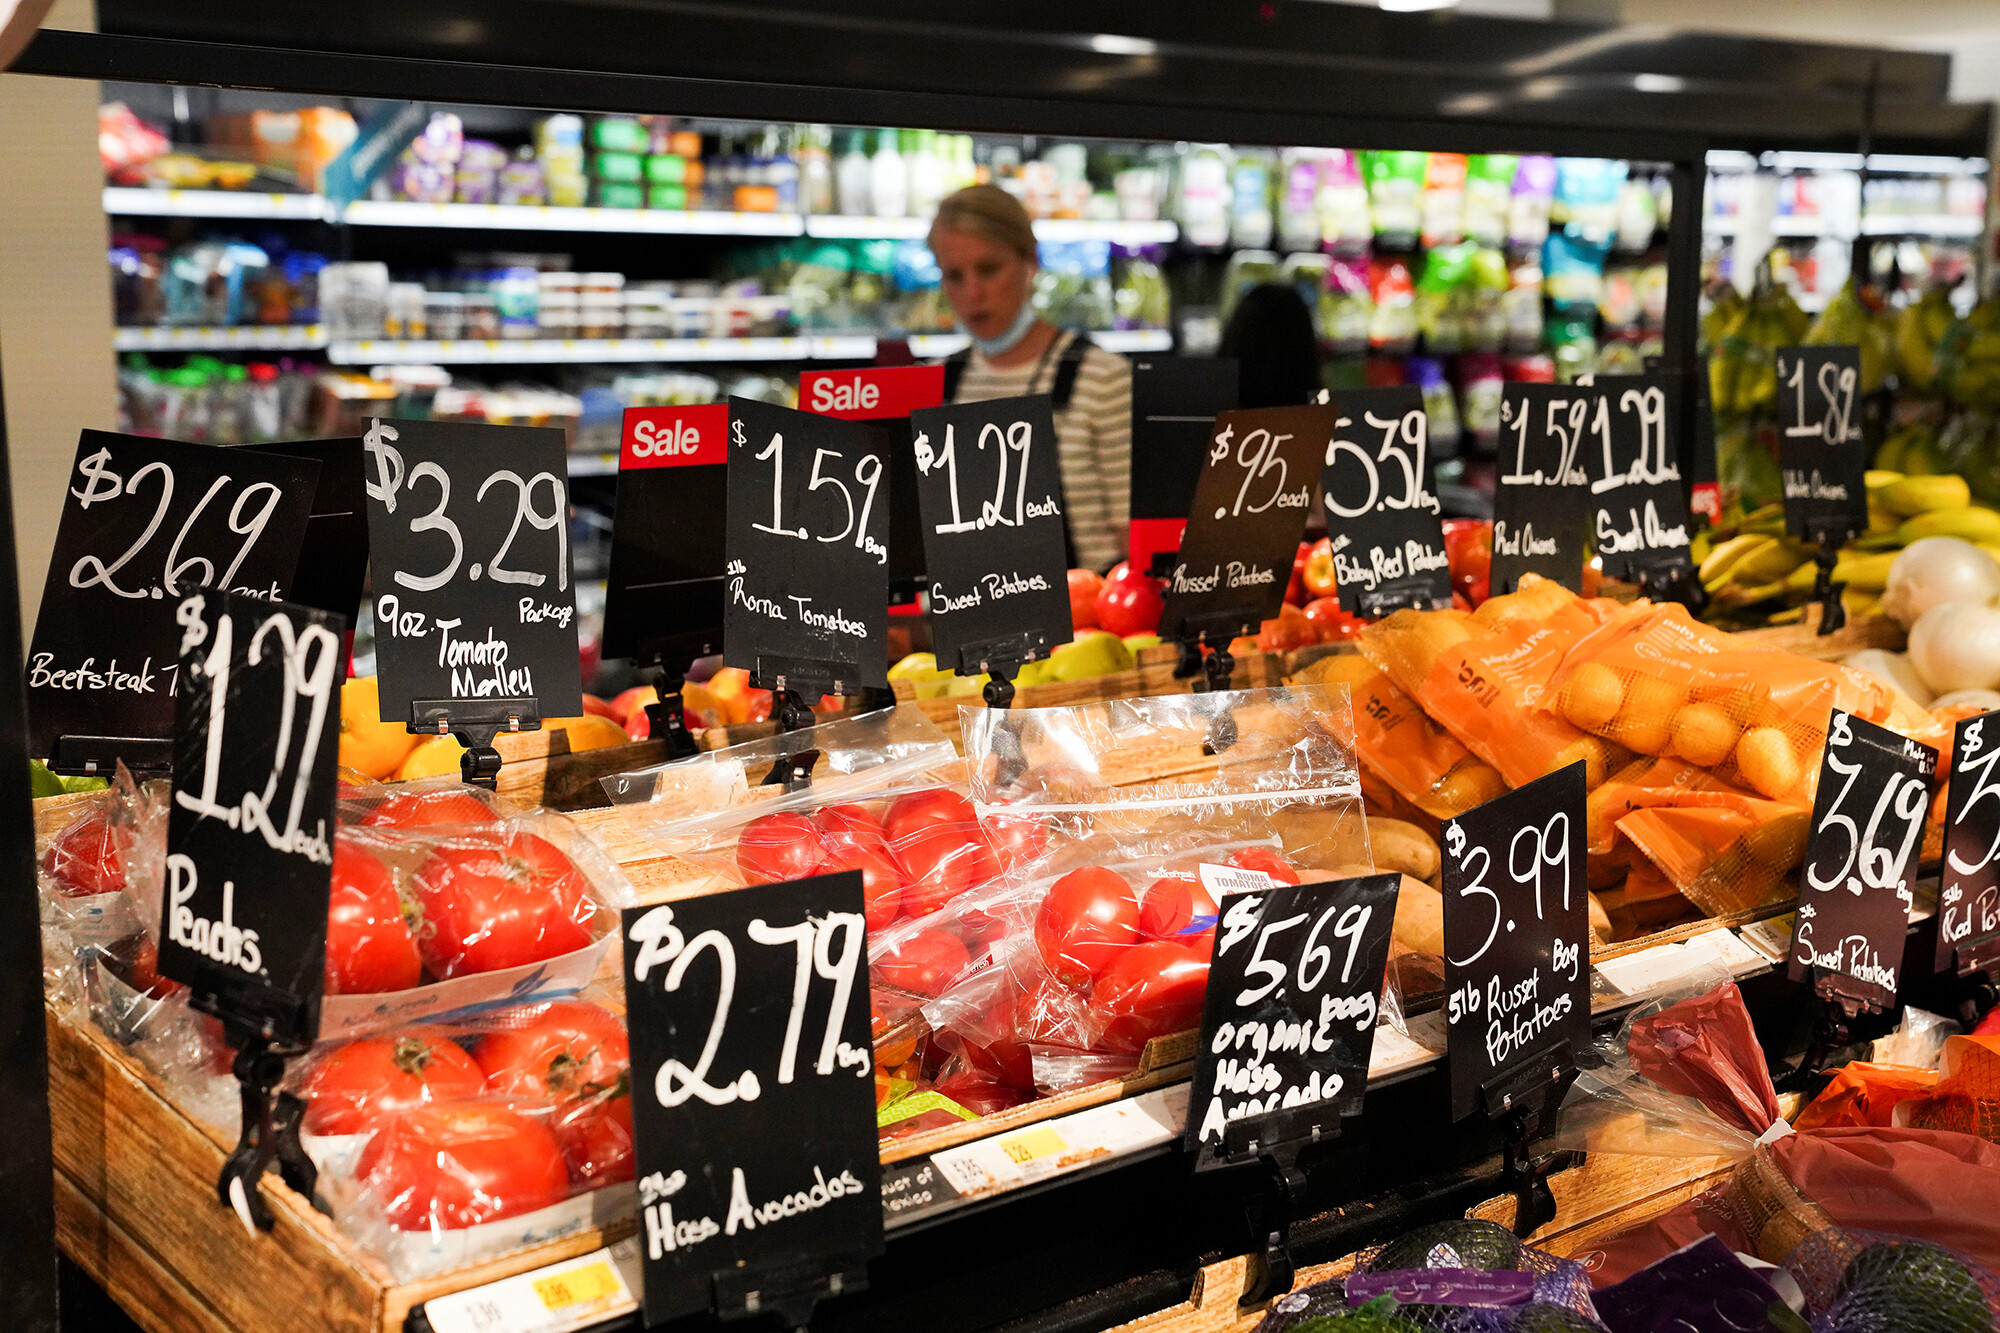 A key inflation measure rose at fastest pace in 30 years in July